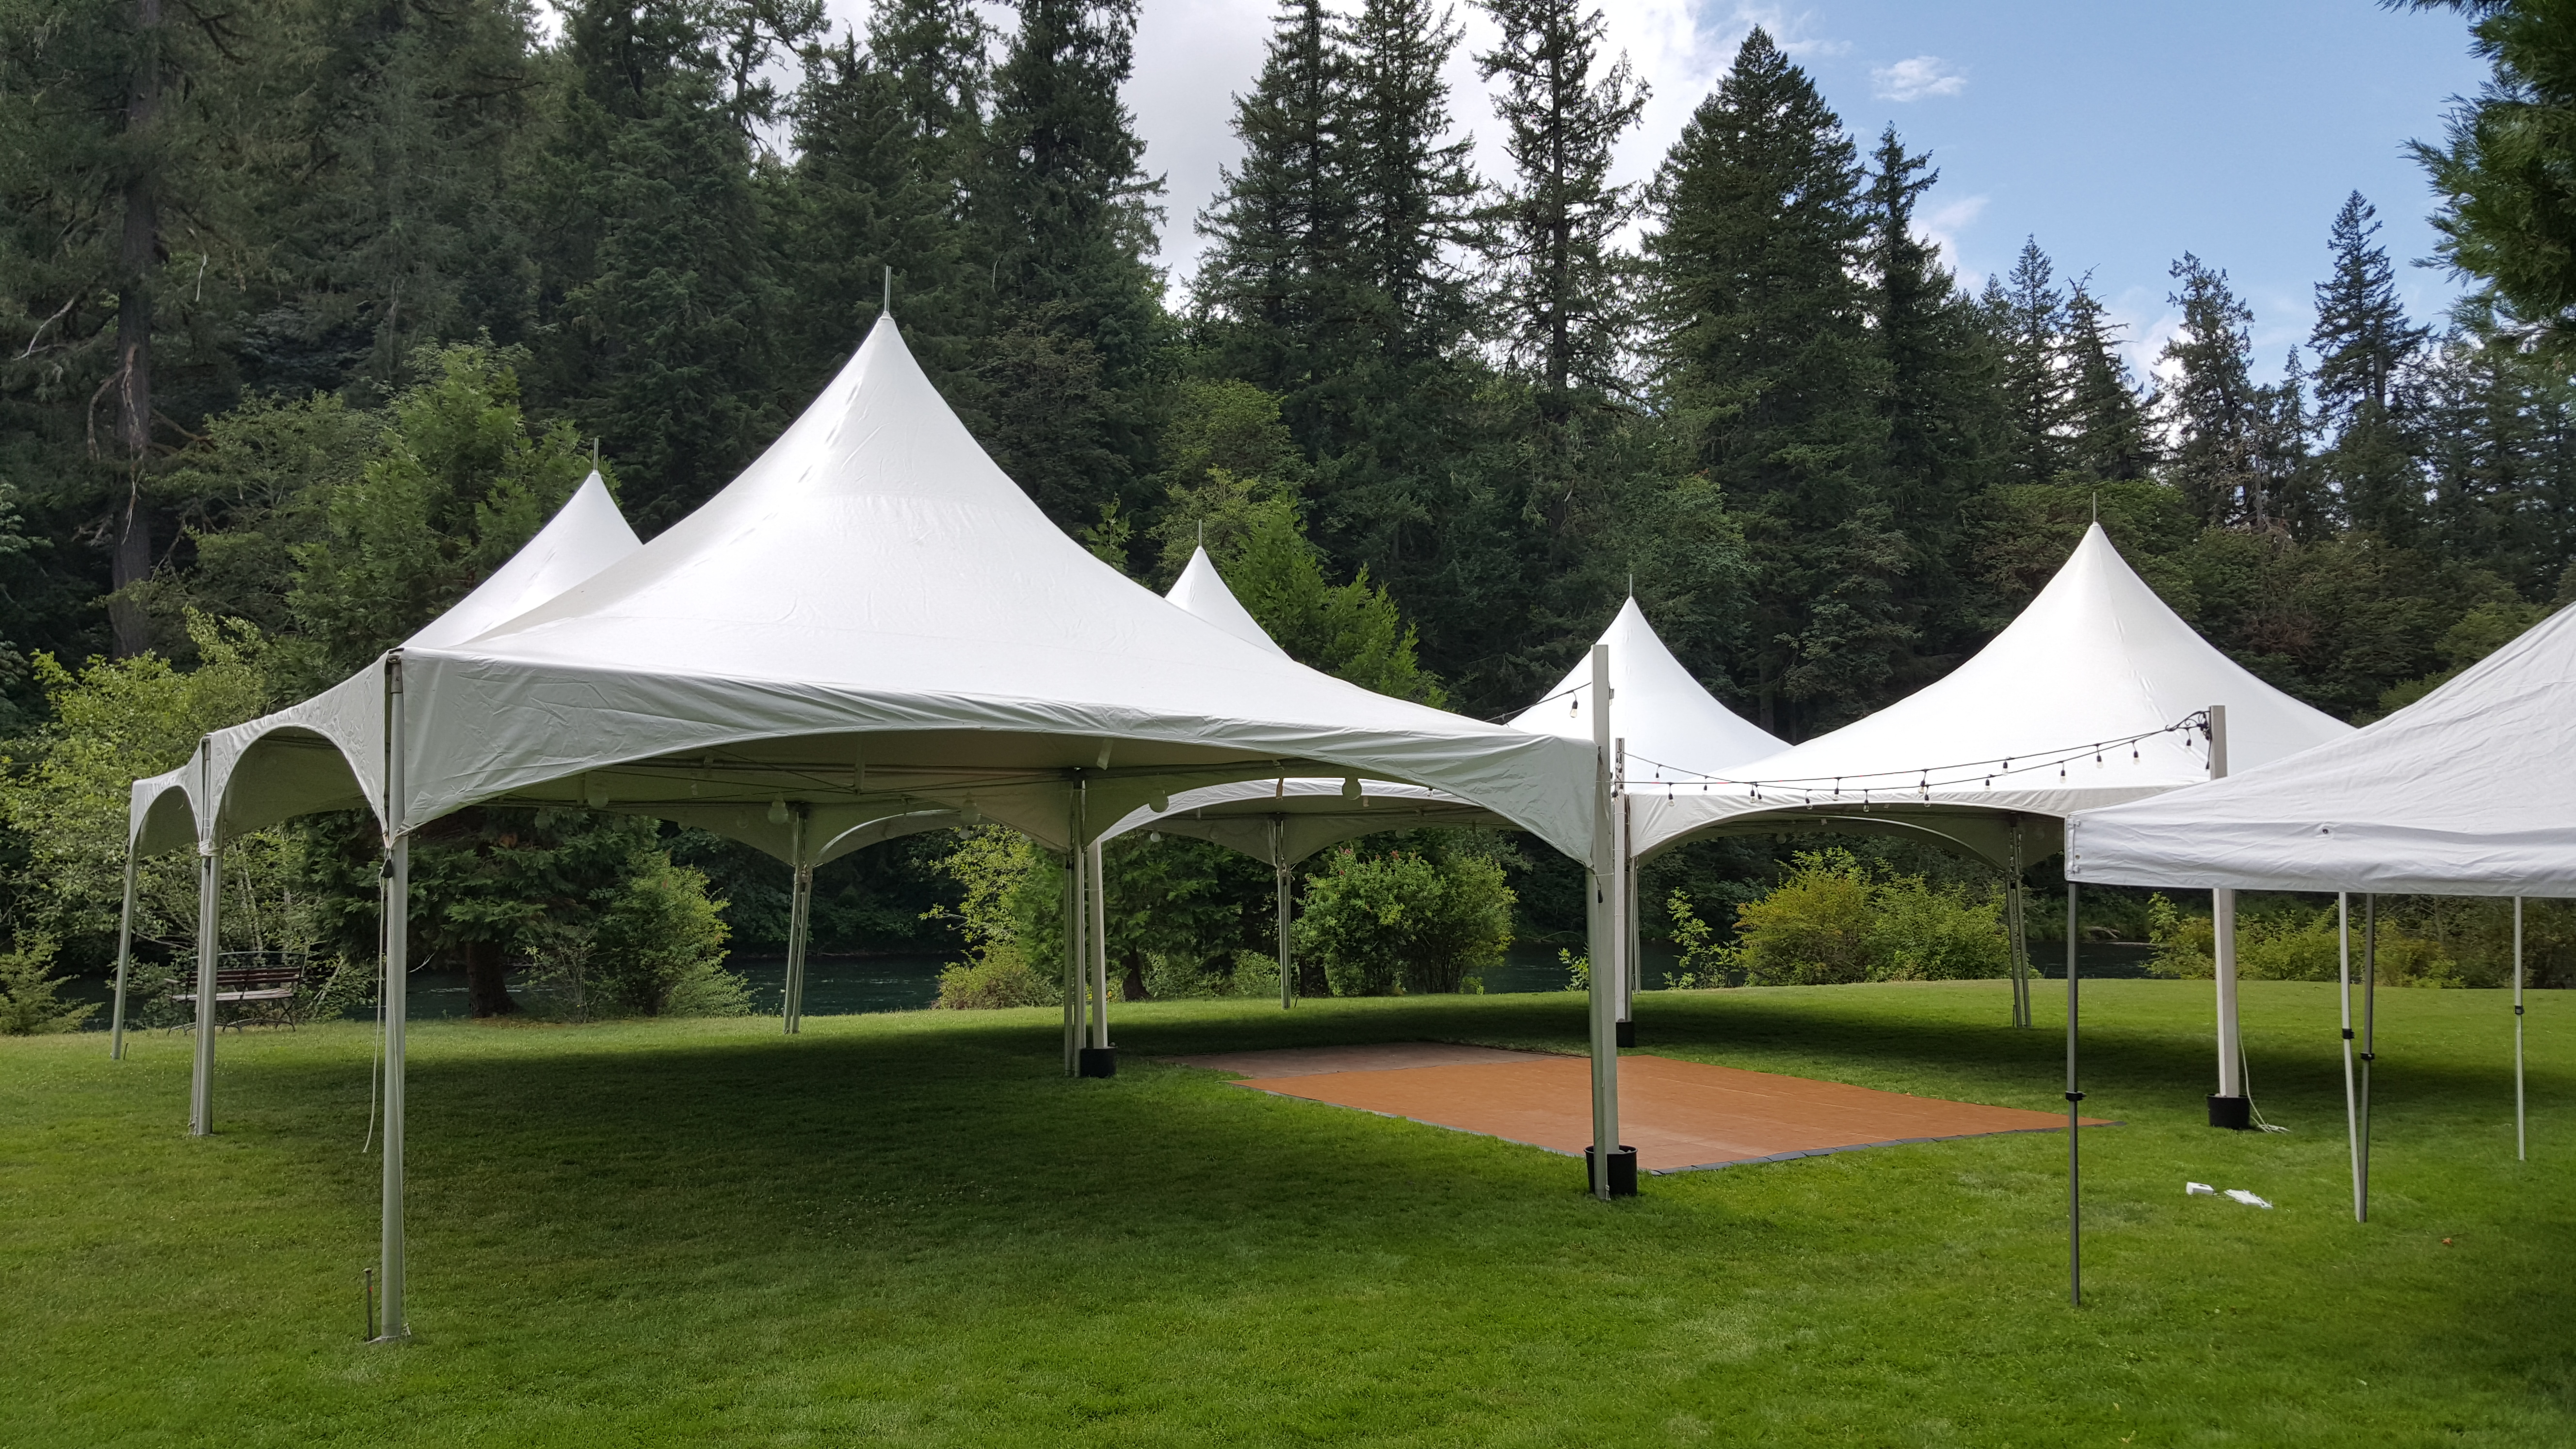 High Peak Tent 20X20 & Destination Events High Peak Tent 20X20 - Destination Events